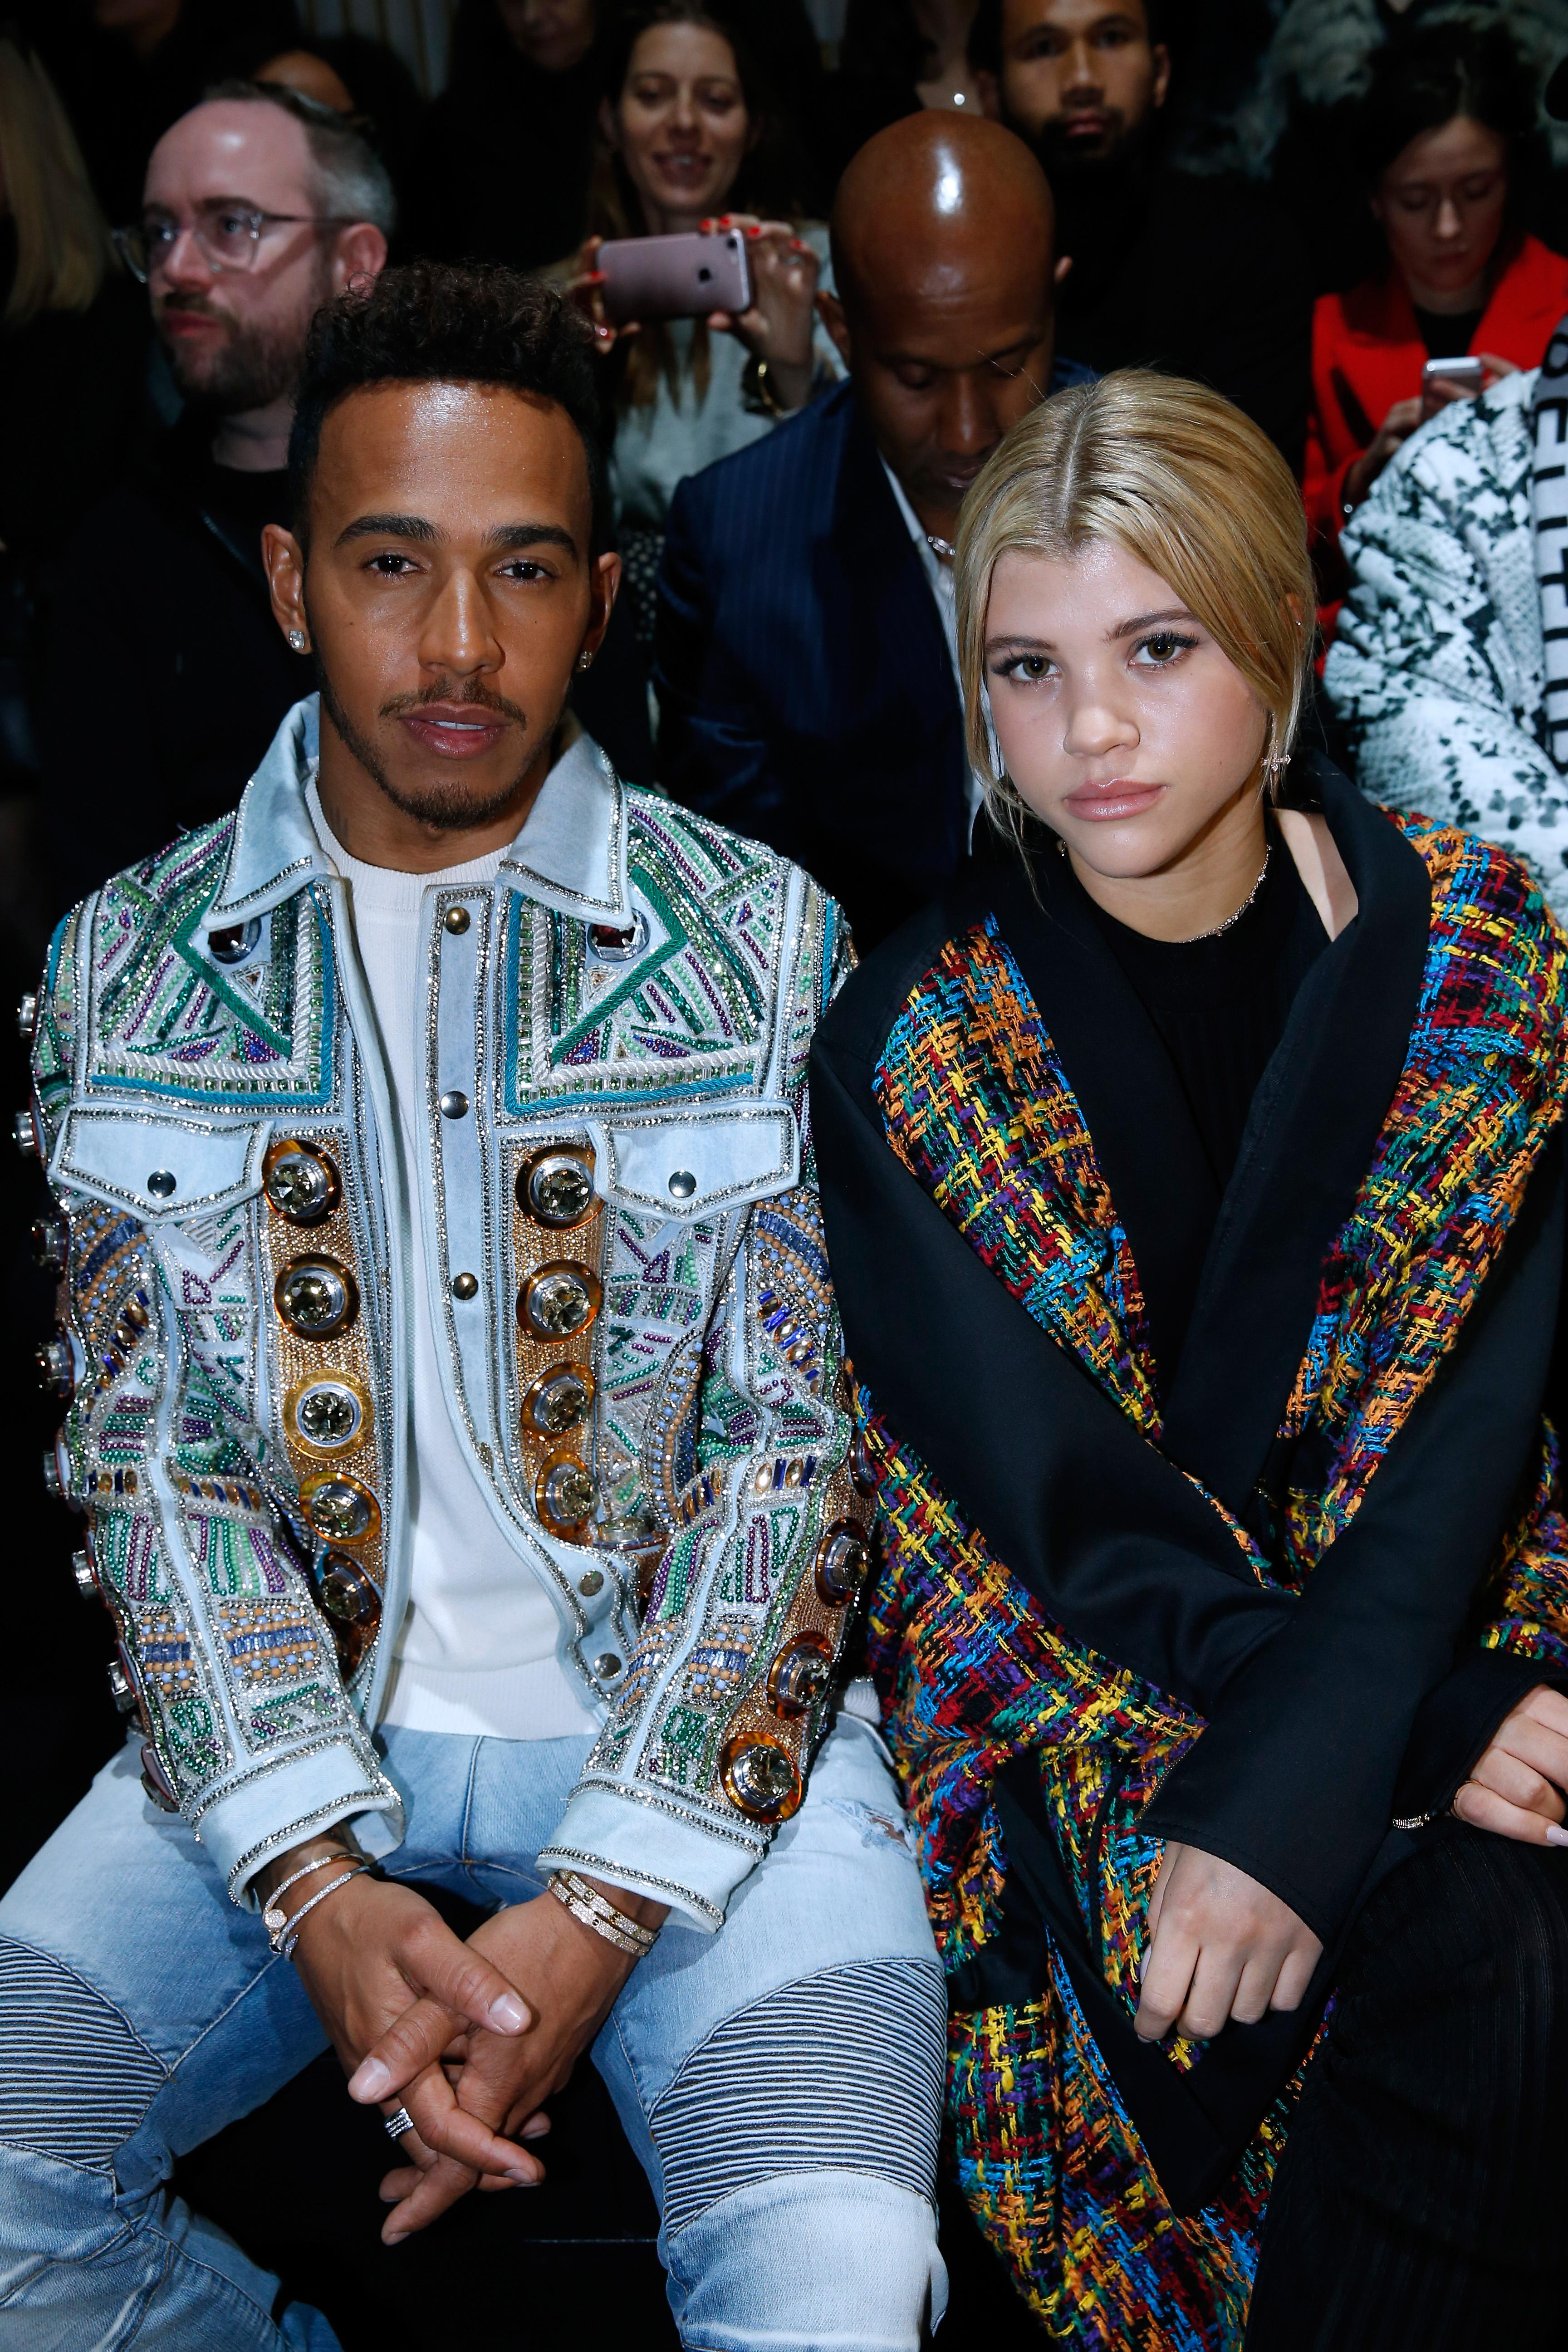 Lewis Hamilton was rumoured to be dating model Sofia Richie